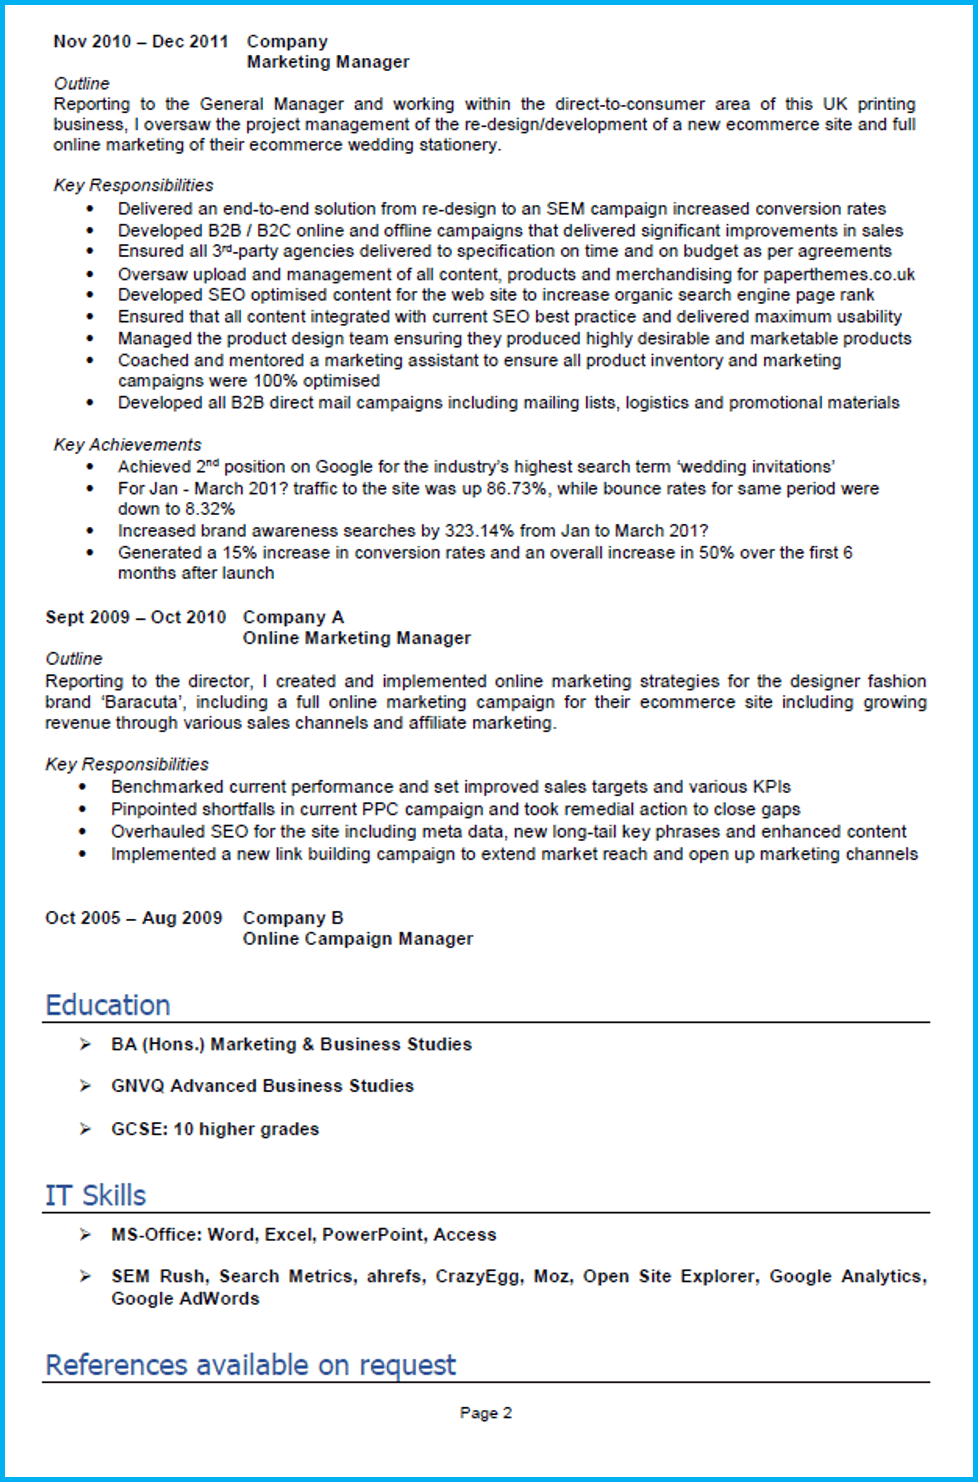 Google Docs marketing CV example page 2